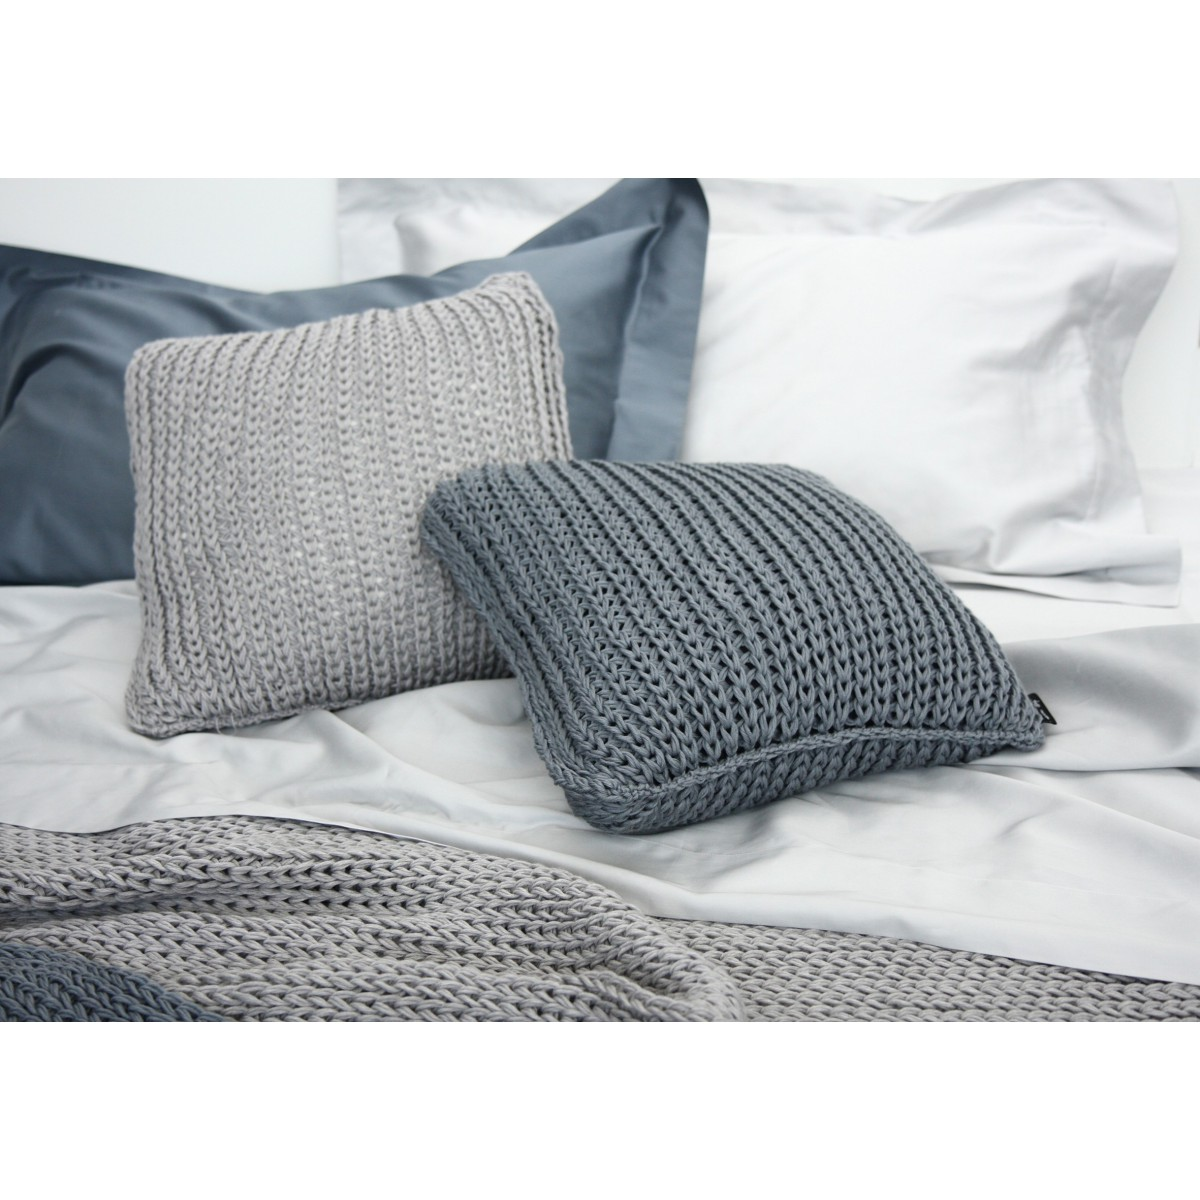 coussin en laine douce maille tricot natural tricot poemo design. Black Bedroom Furniture Sets. Home Design Ideas